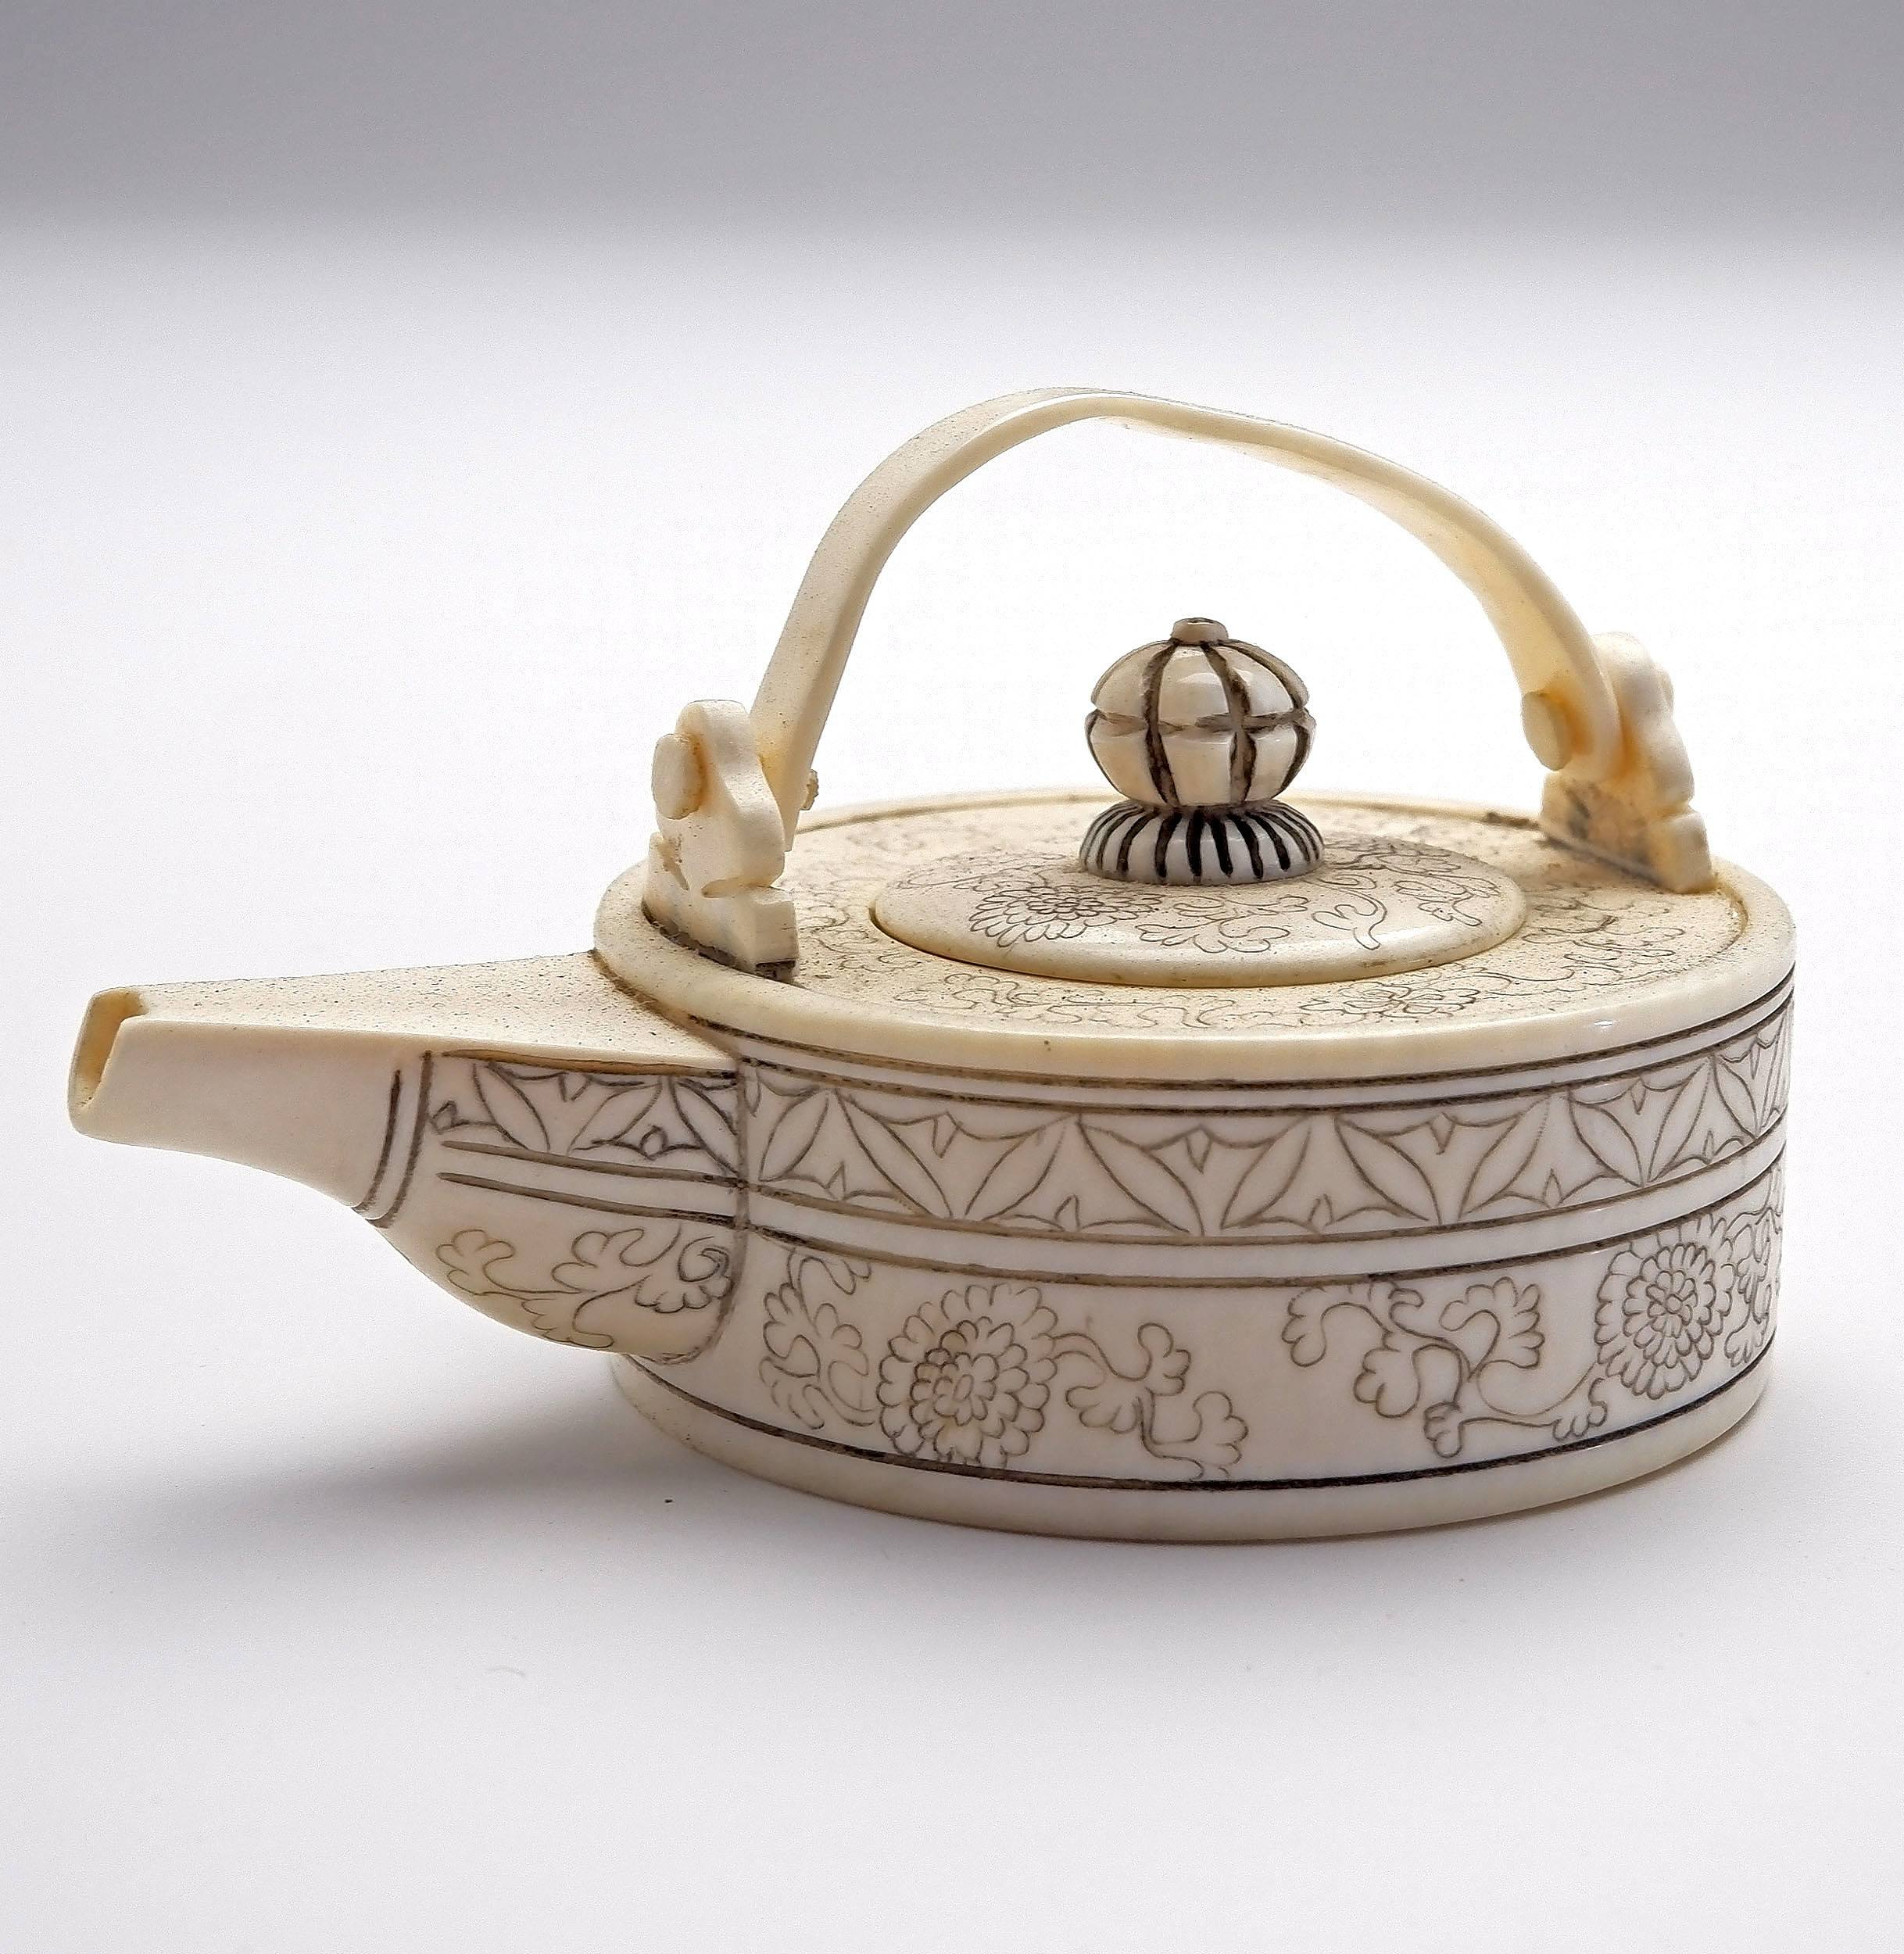 'Small Chinese Ivory Wine Pot, Mid 20th Century'